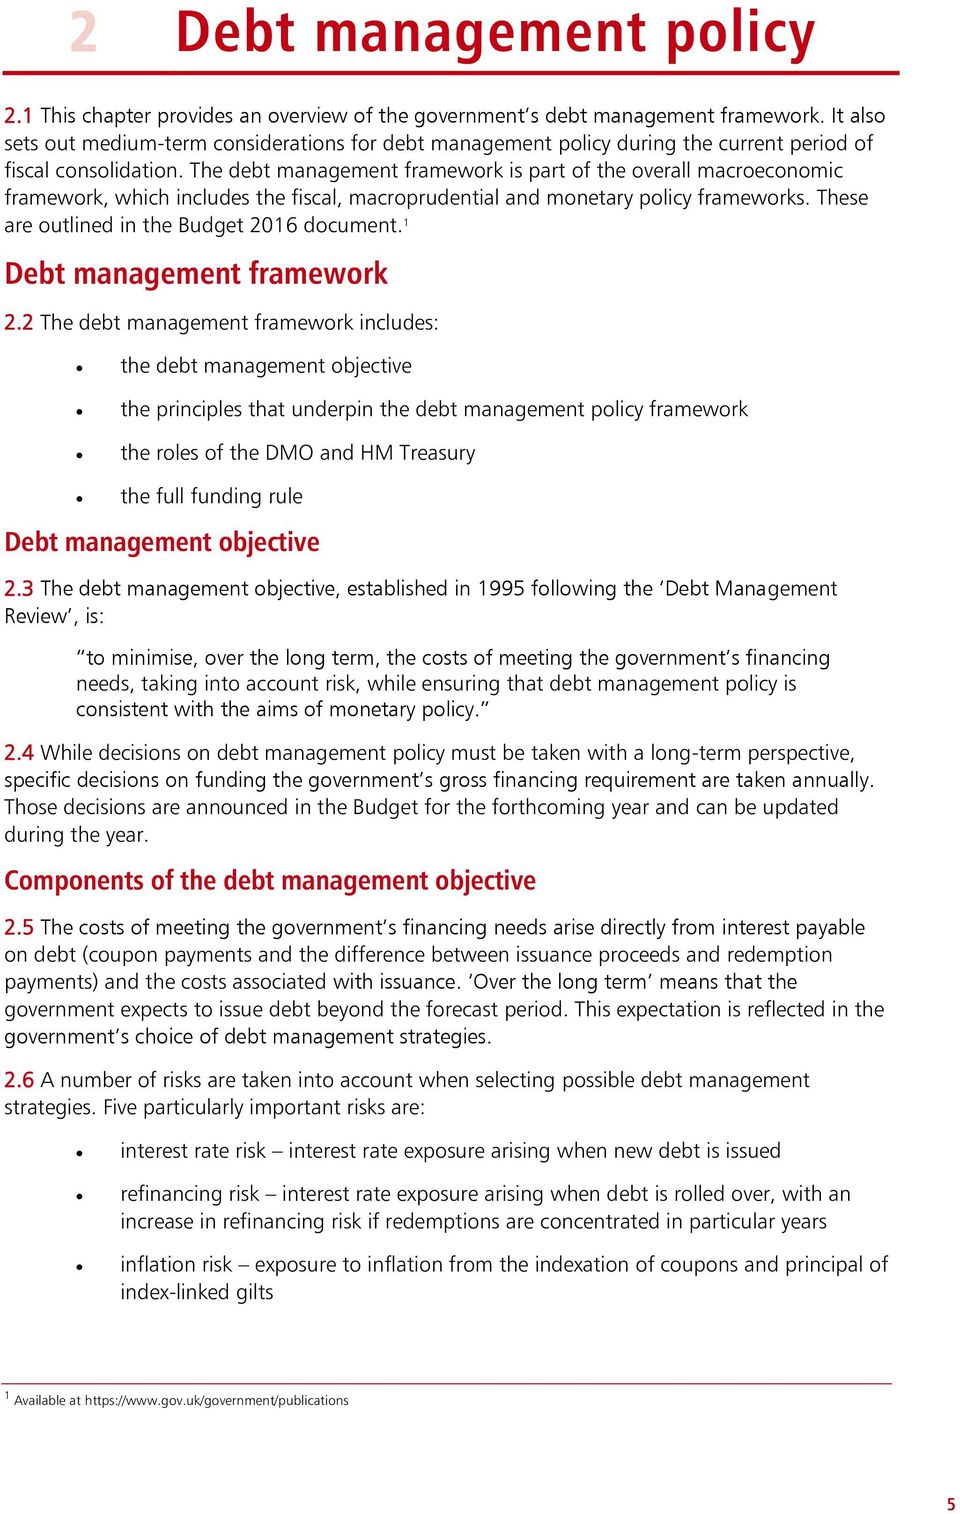 what is debt management pdf